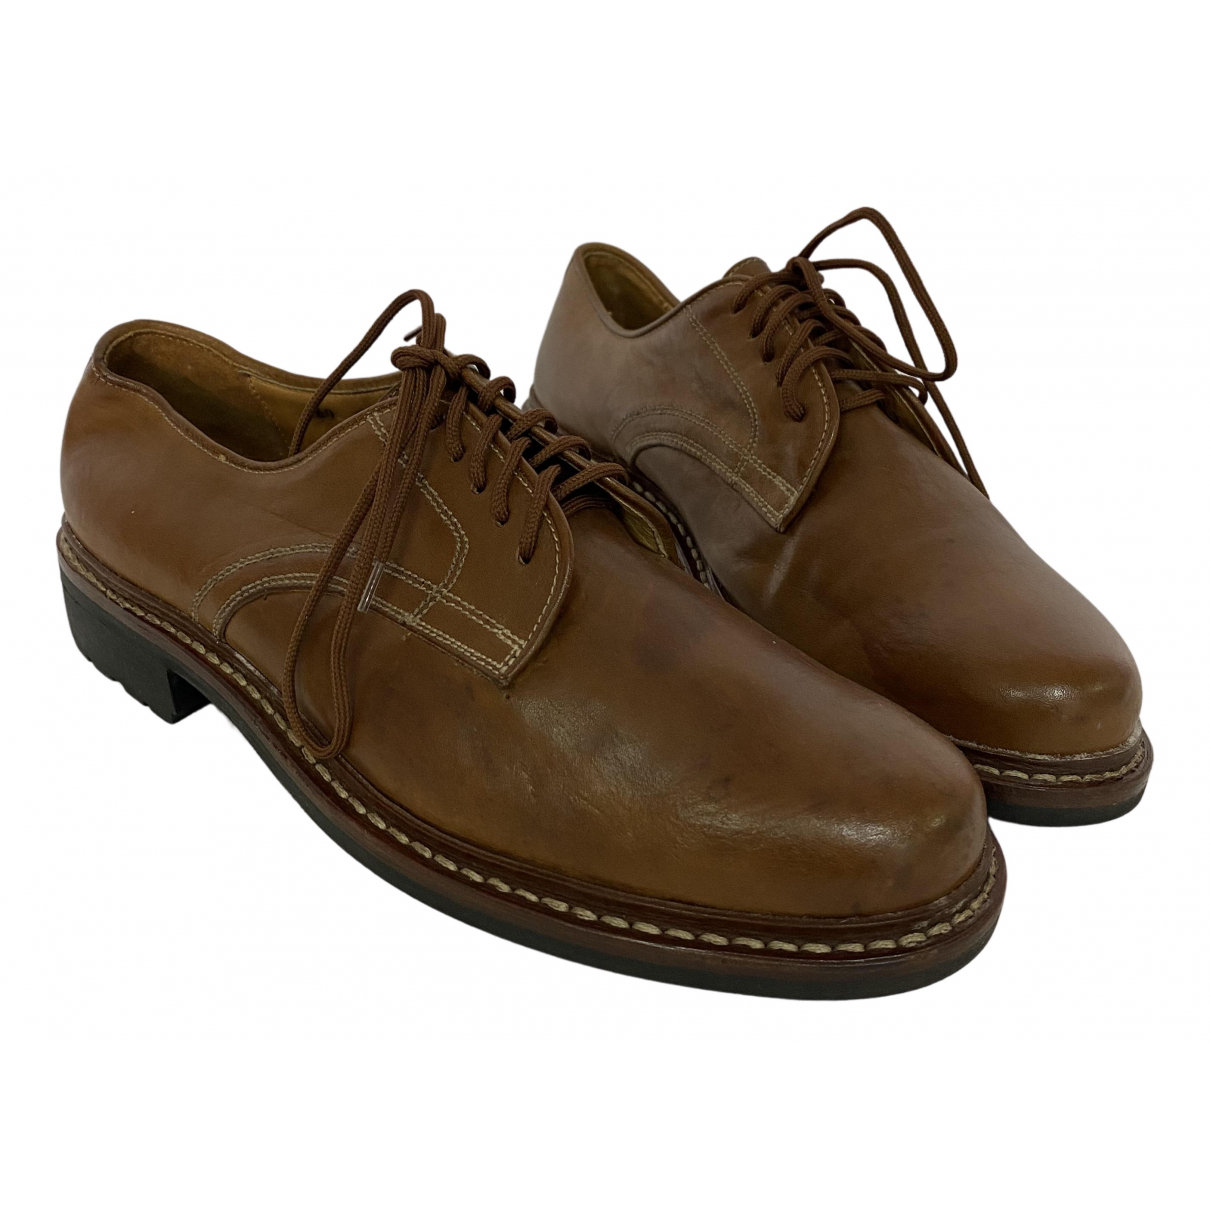 Pollini N Brown Leather Lace ups for Men 44.5 EU